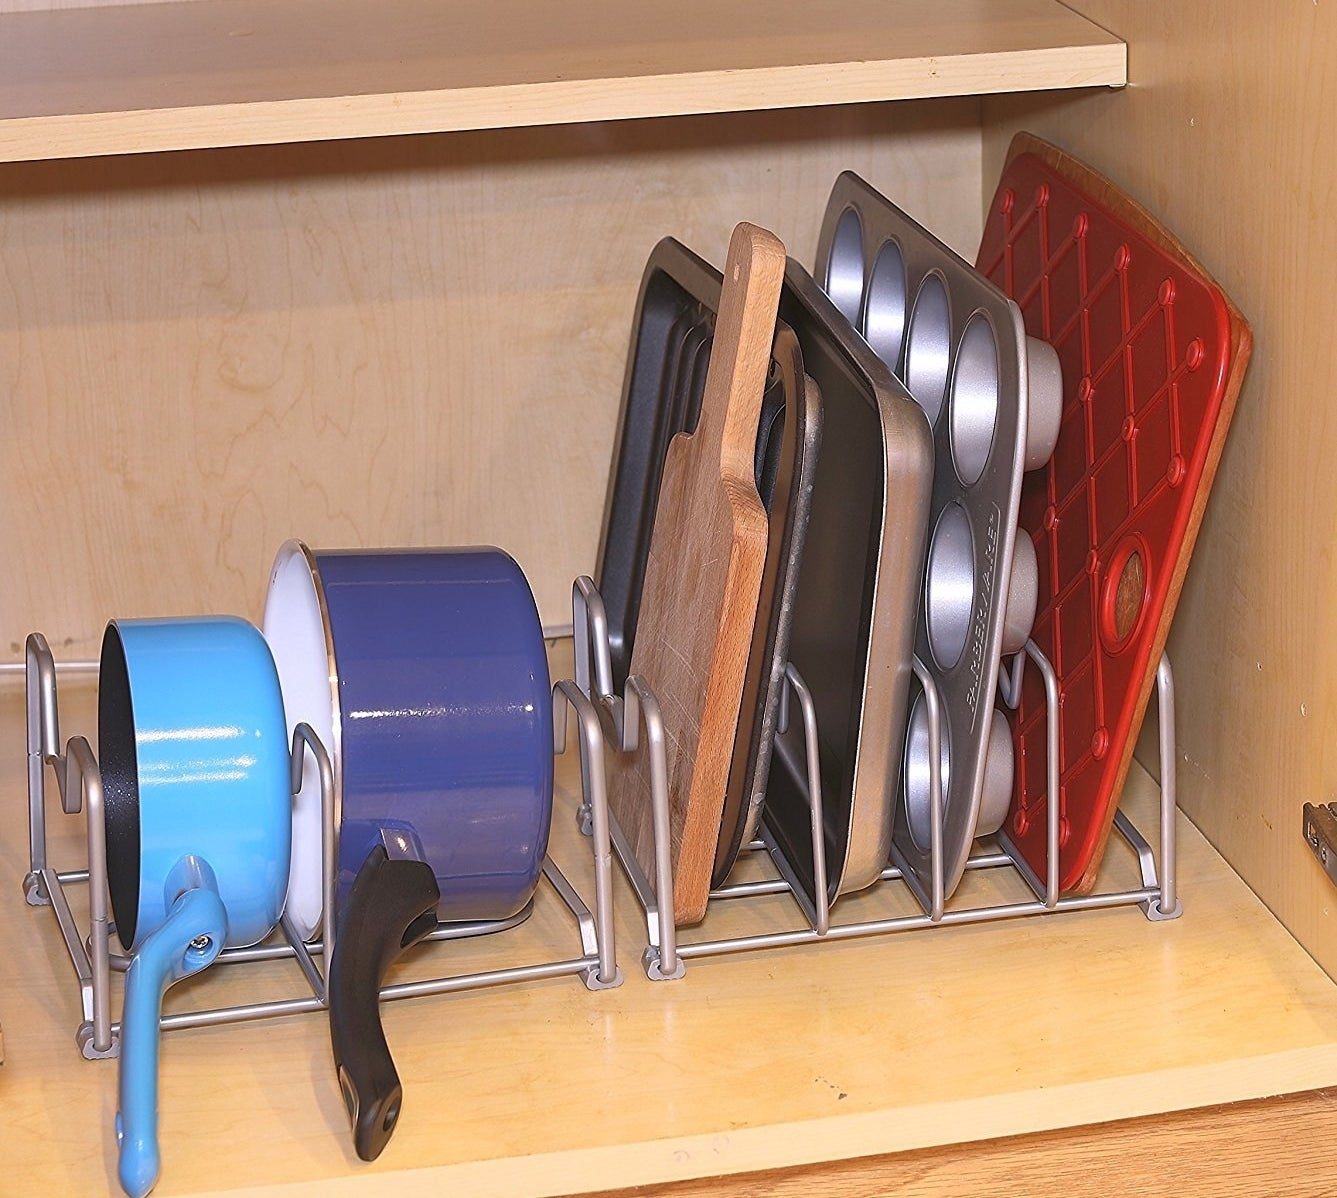 the bakeware rack in a cabinet holding two pots and some baking trays